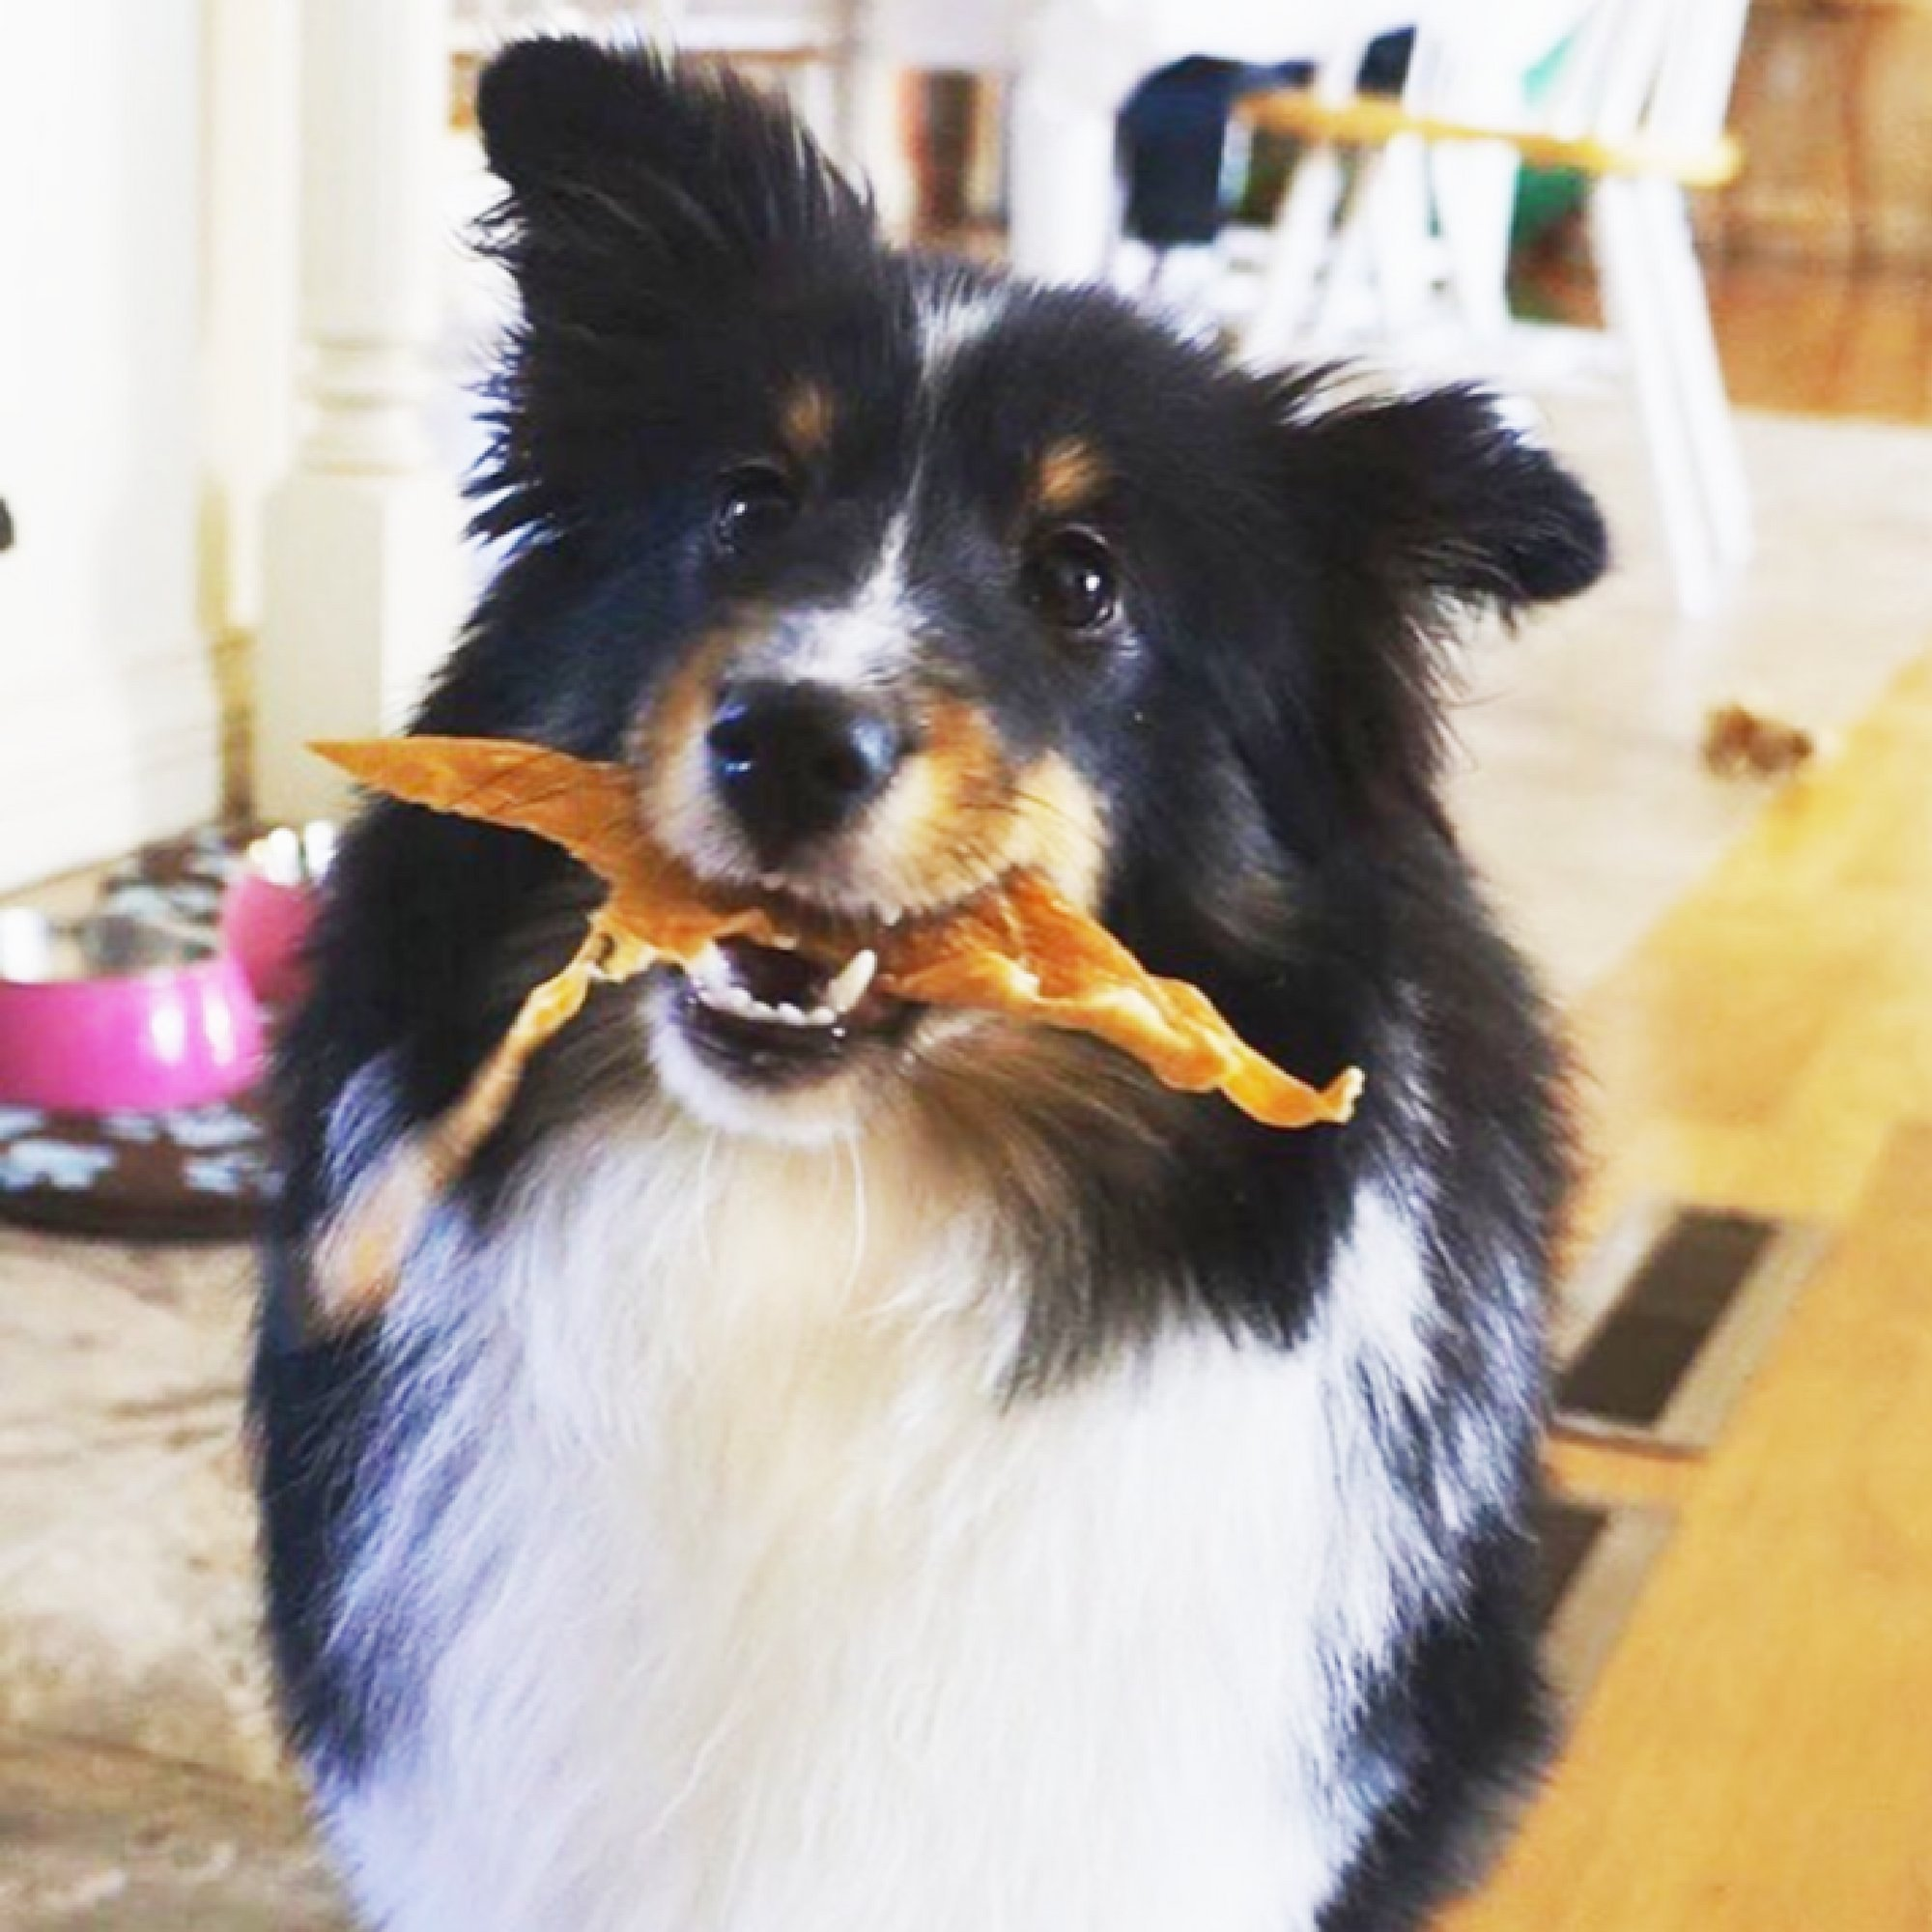 Green Butterfly Brands Chicken Jerky - Dog Treats Made in USA Only - One Ingredient: USDA Grade A Chicken Breast - No Additives or Preservatives - Grain Free, All Natural Premium Strips 8 oz. by Green Butterfly Brands (Image #8)